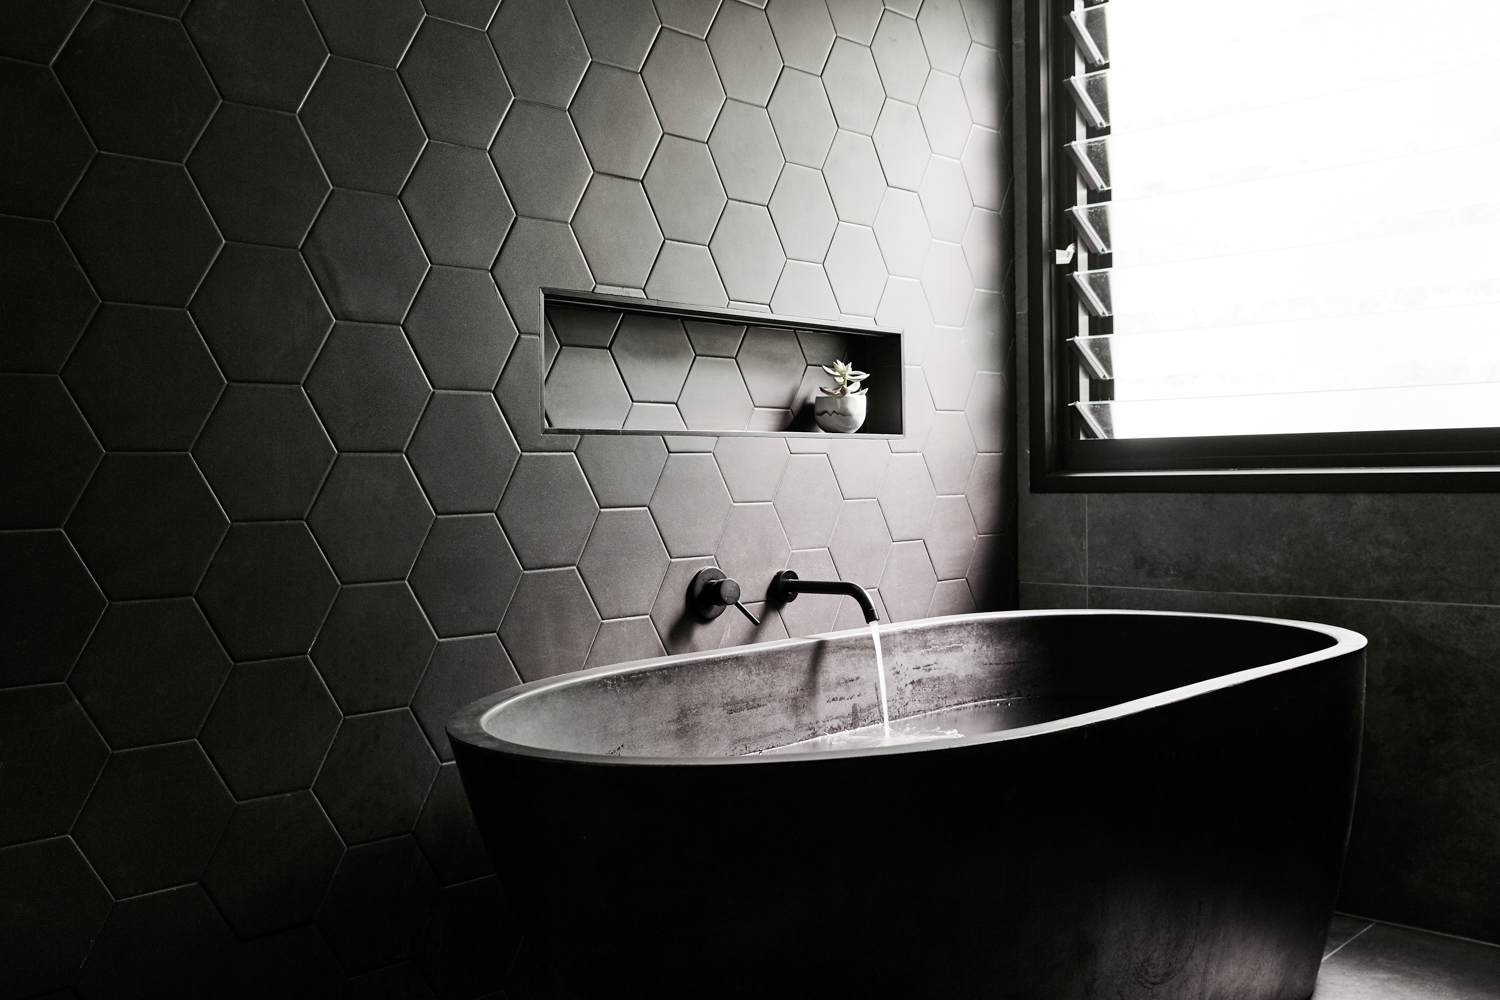 oasis-bath-concrete-nation-the-design-emotive-04.jpg